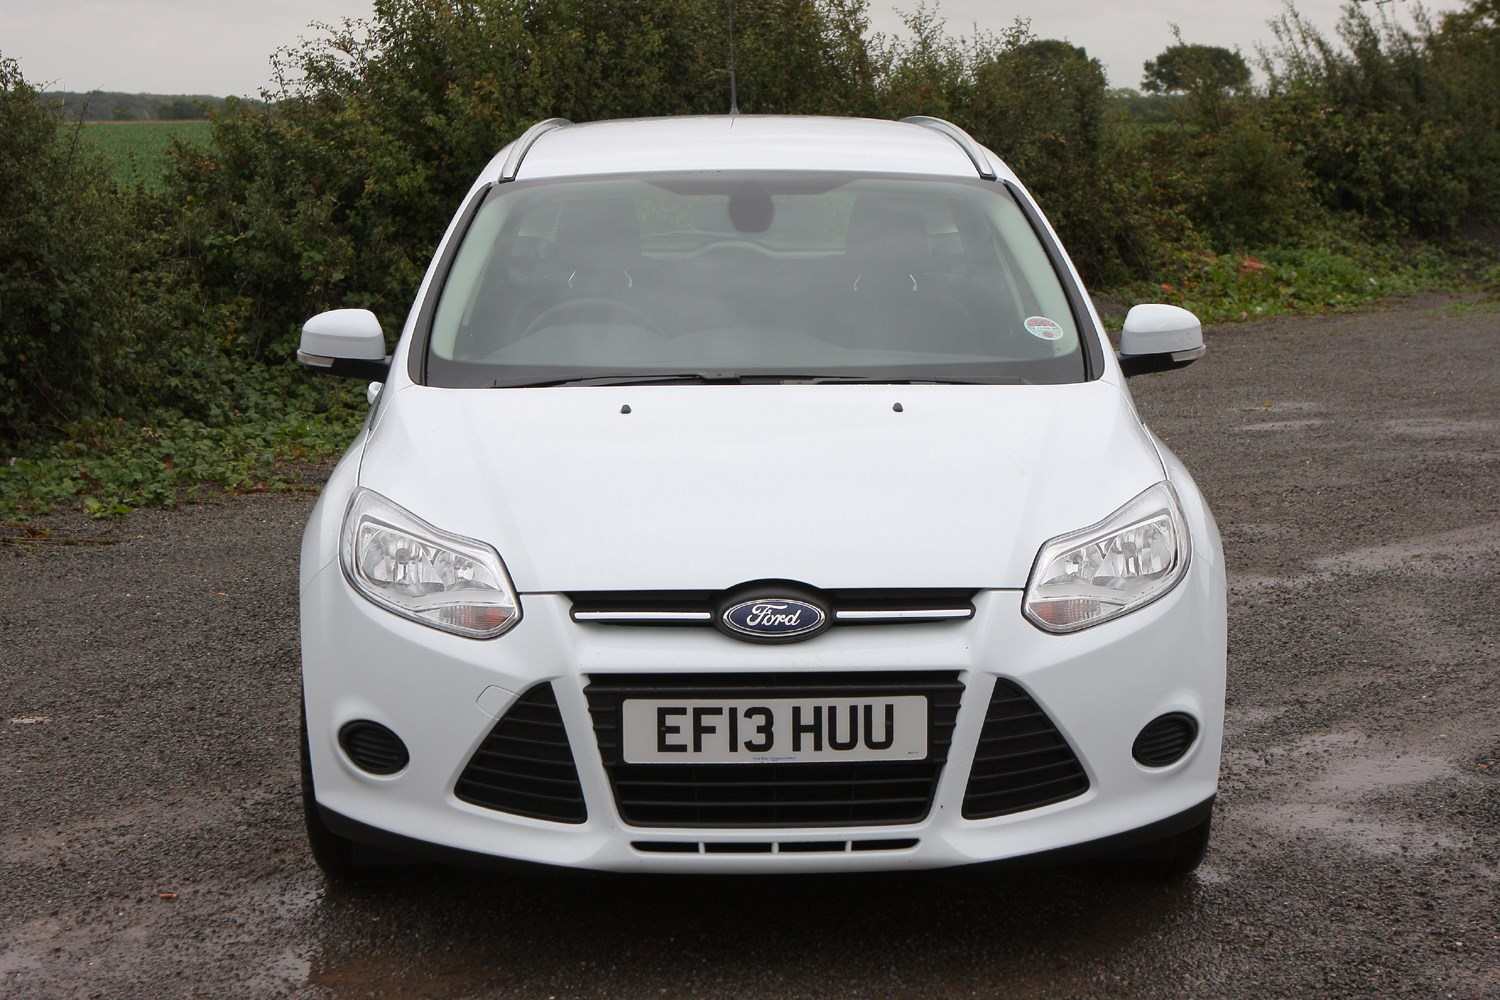 ford focus estate 2011 features equipment and accessories parkers. Black Bedroom Furniture Sets. Home Design Ideas